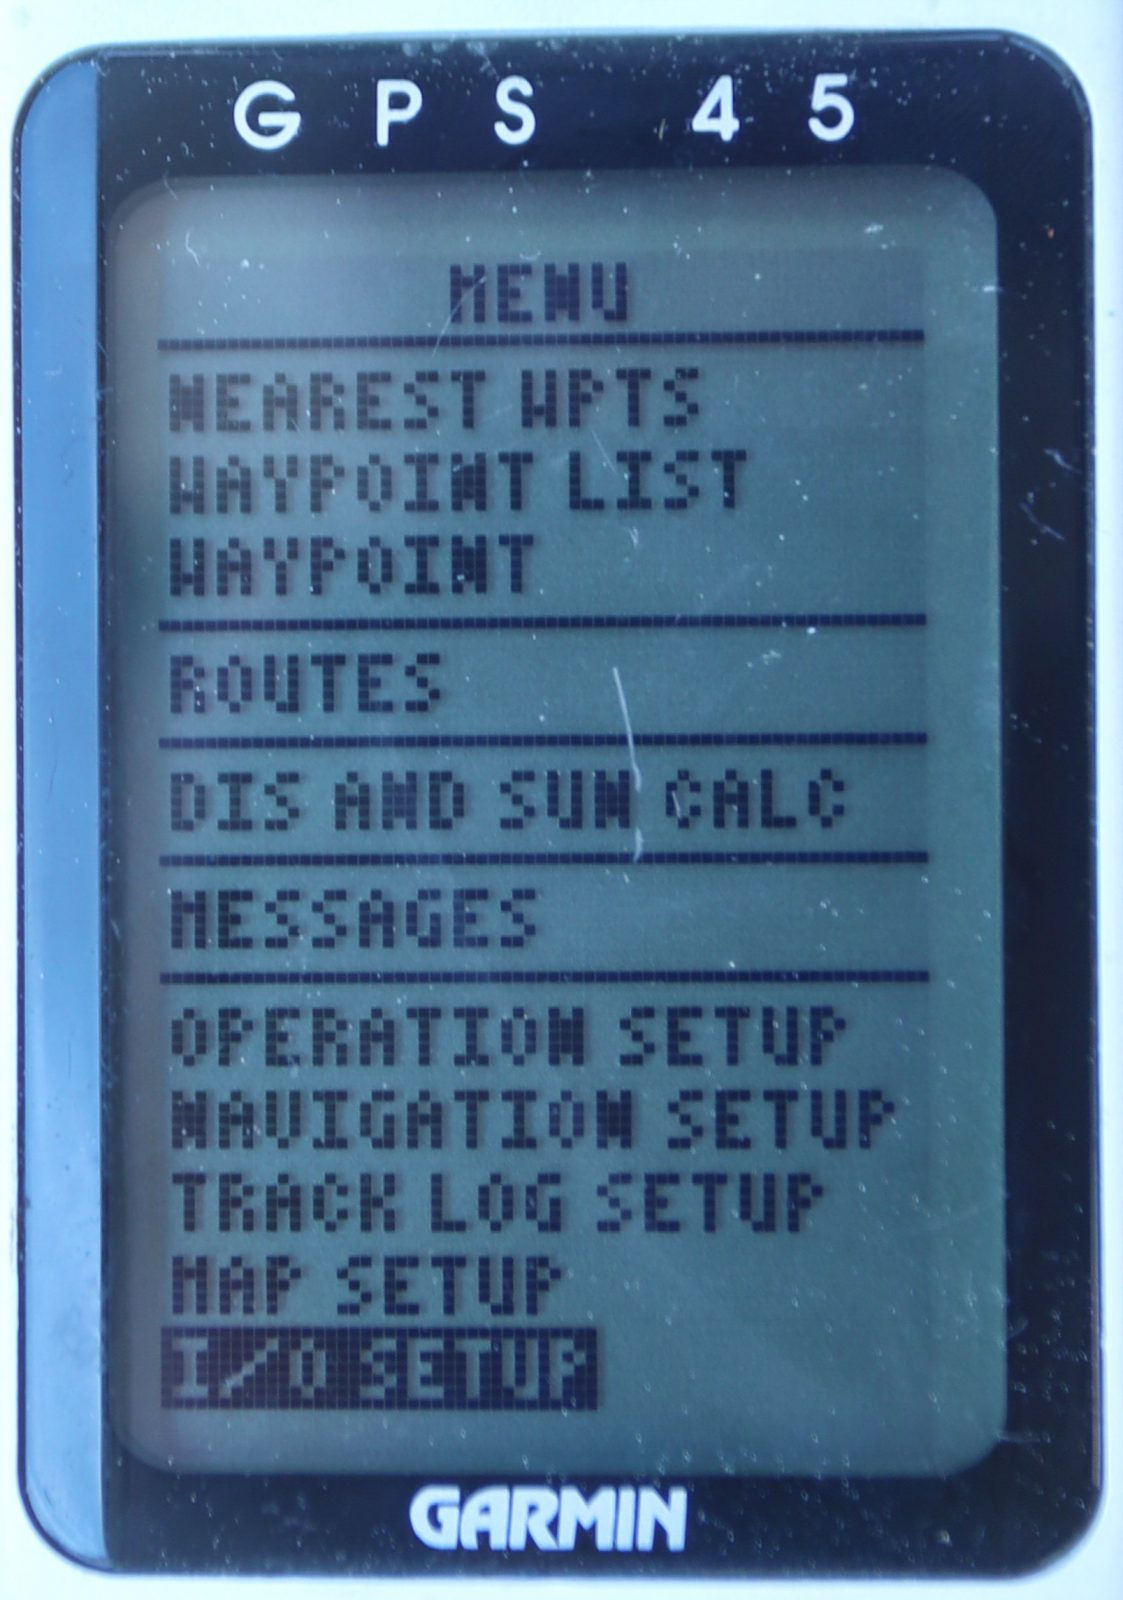 My Garmin GPS 45 was amazing in 1994, and it still works (mostly